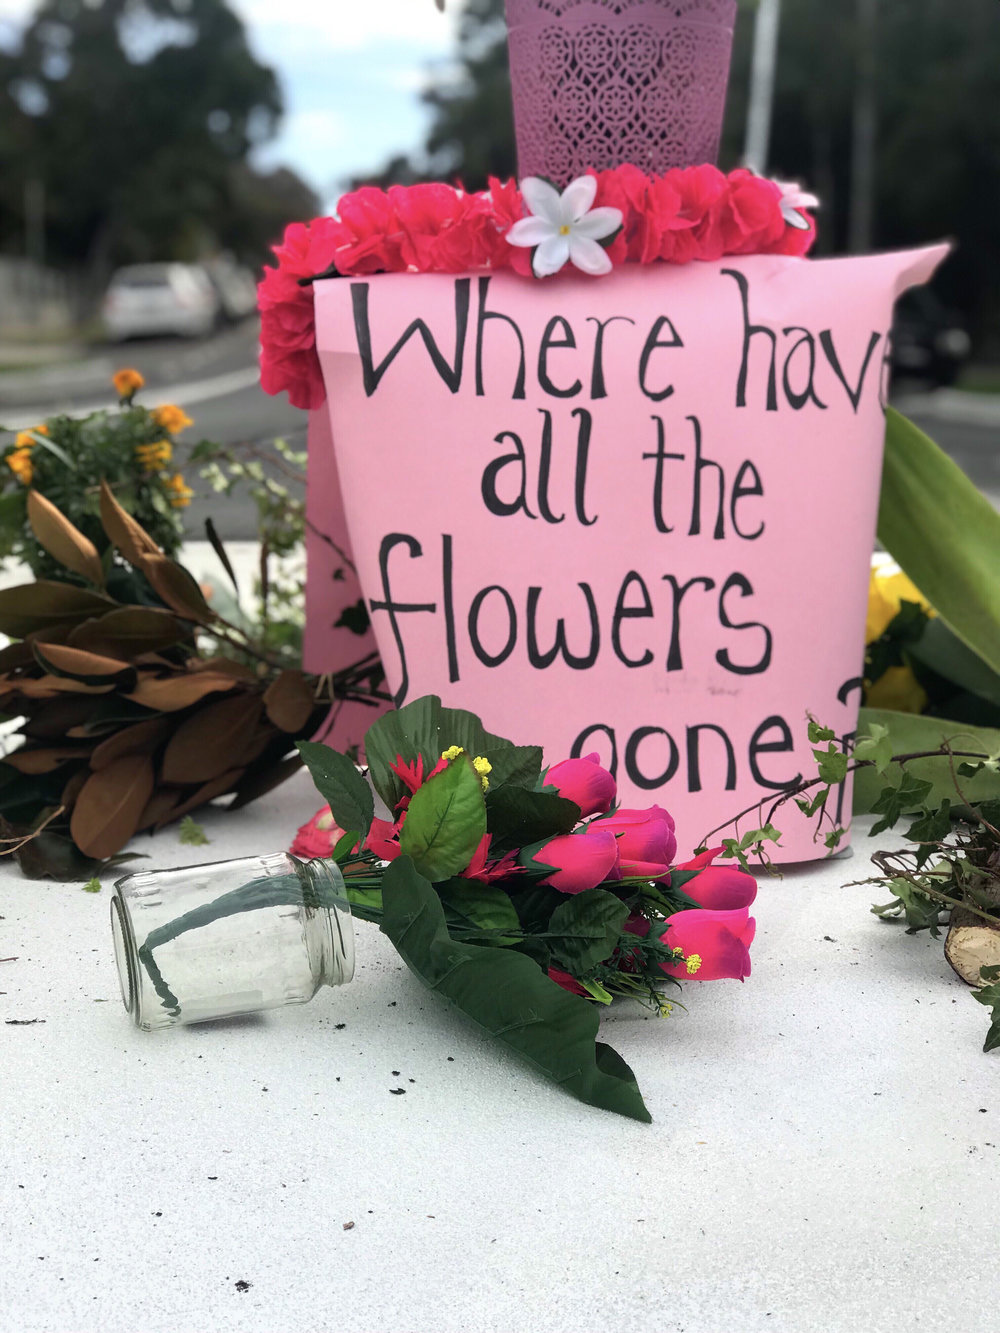 Residents Are Asking North Sydney Council Where Have All The Flowers Gone